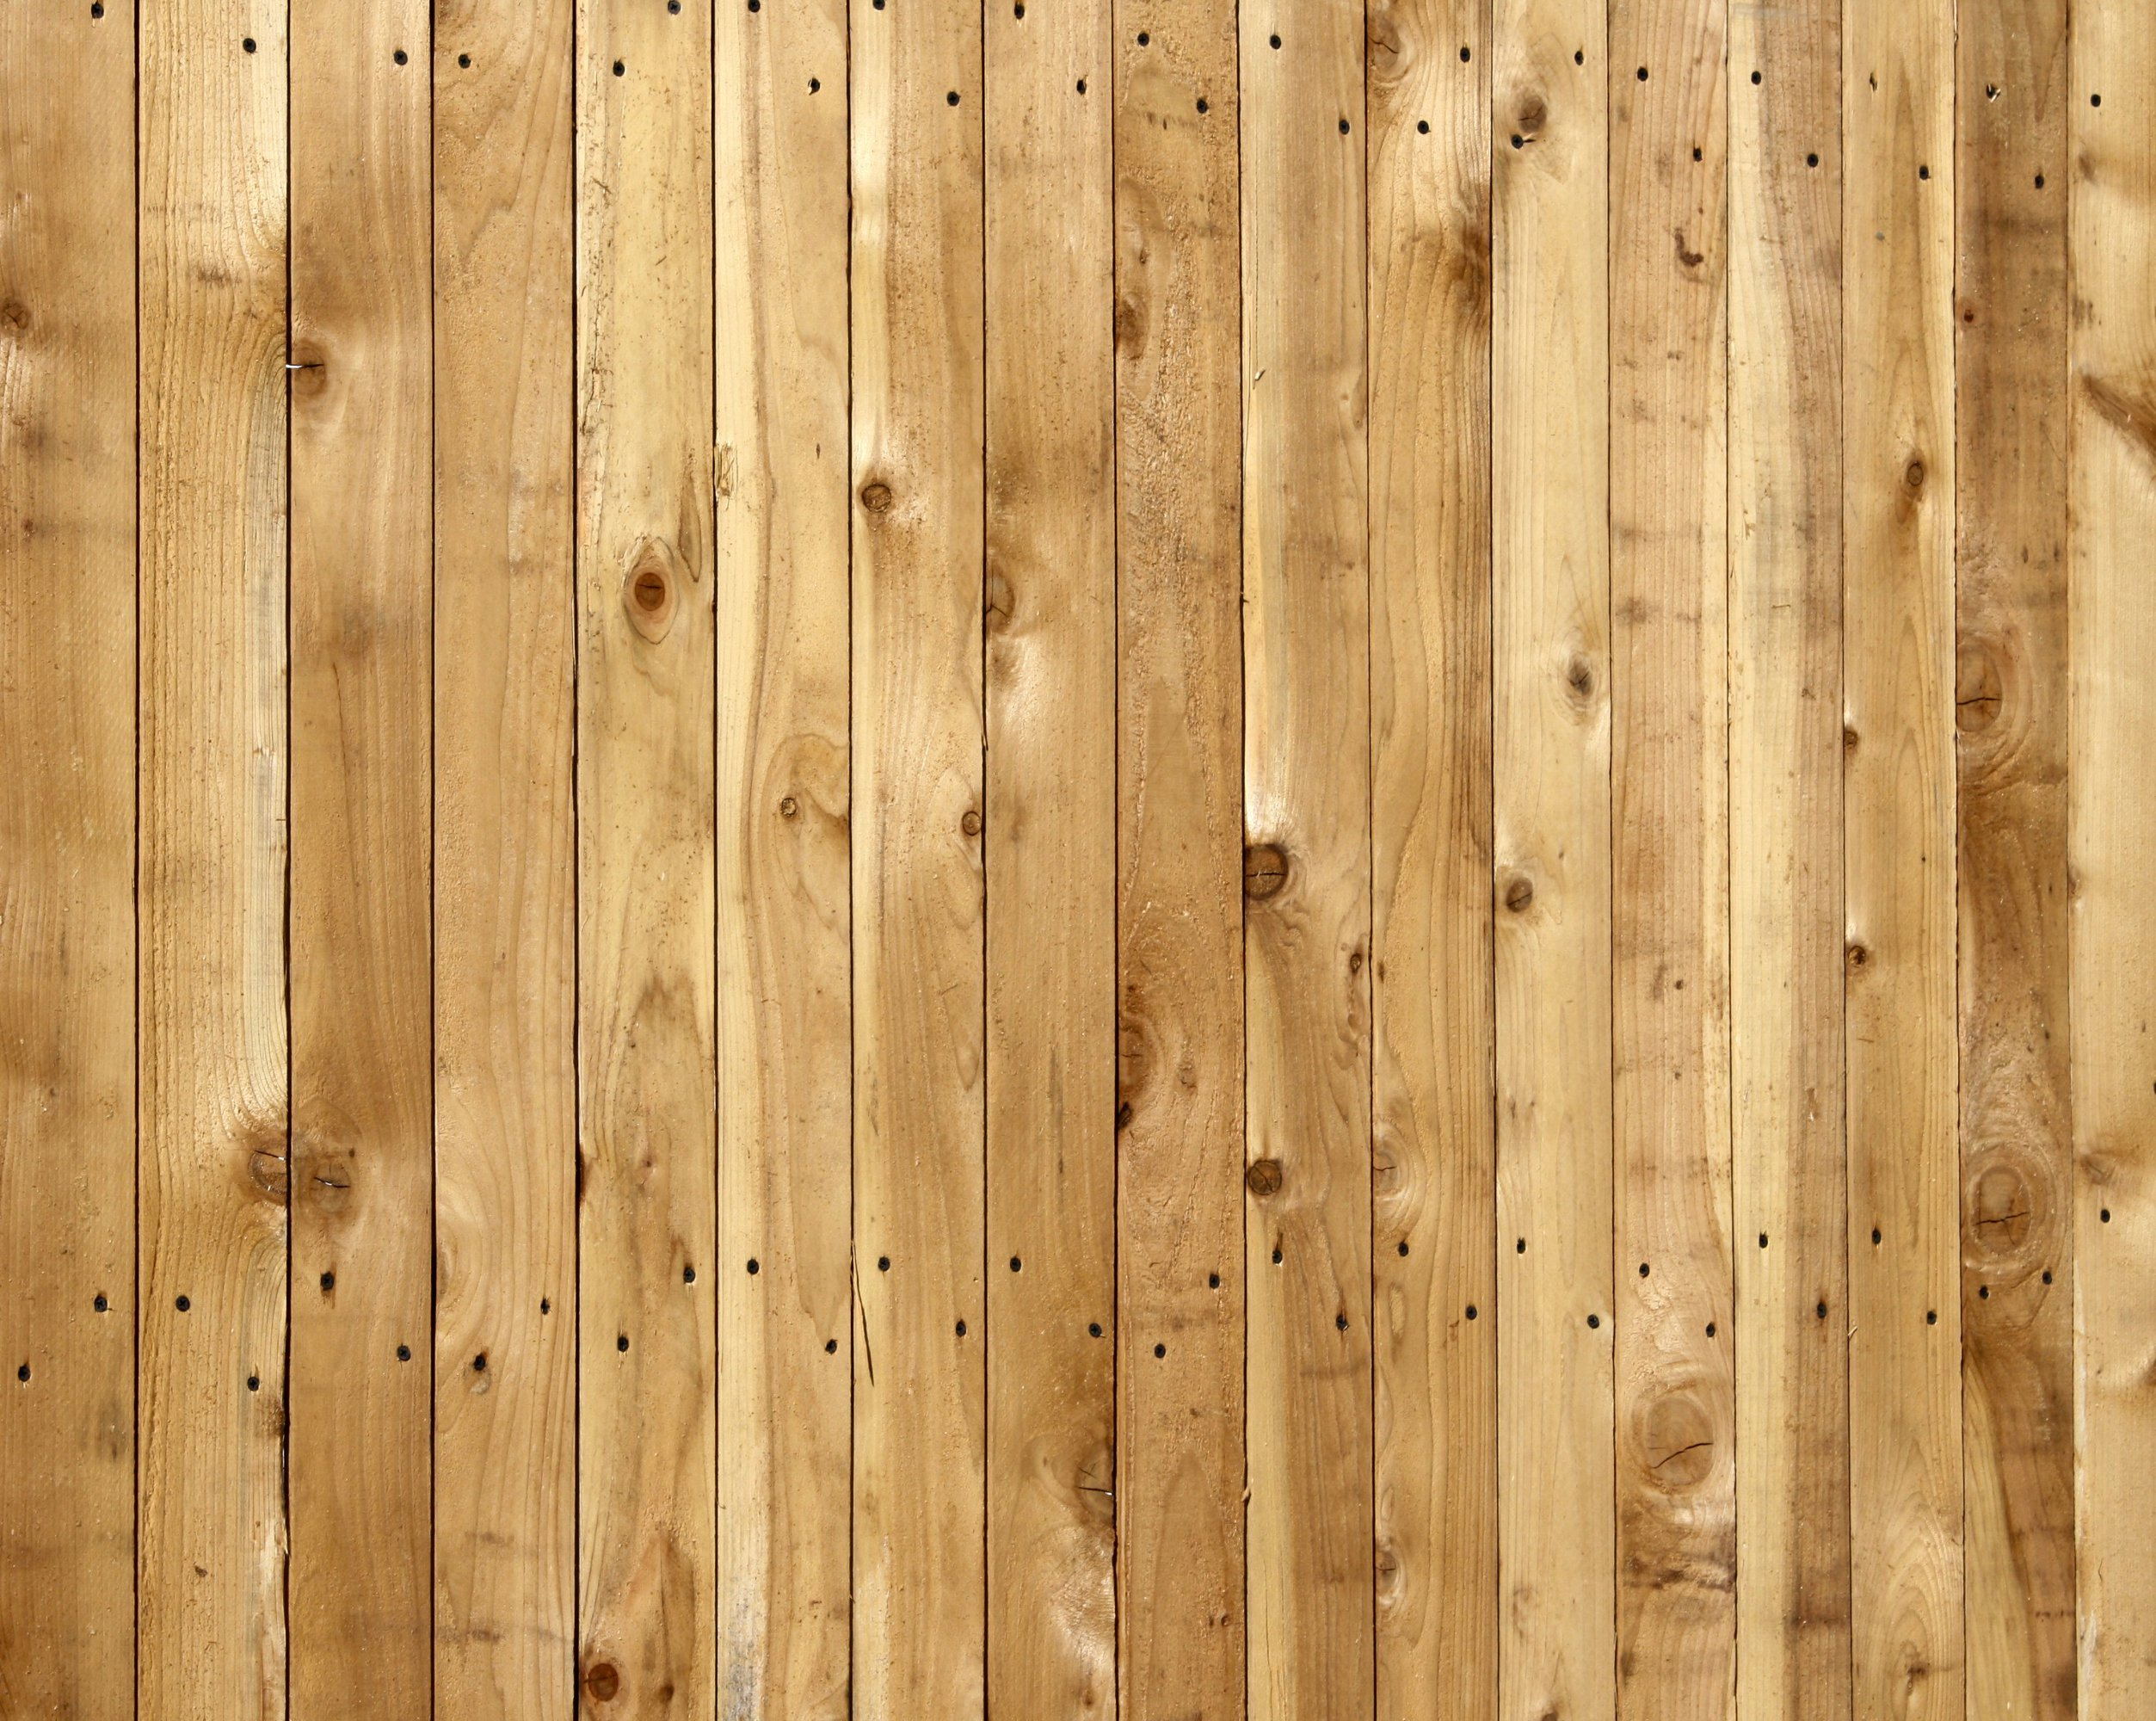 Description Wooden Fence Closeup Jpg